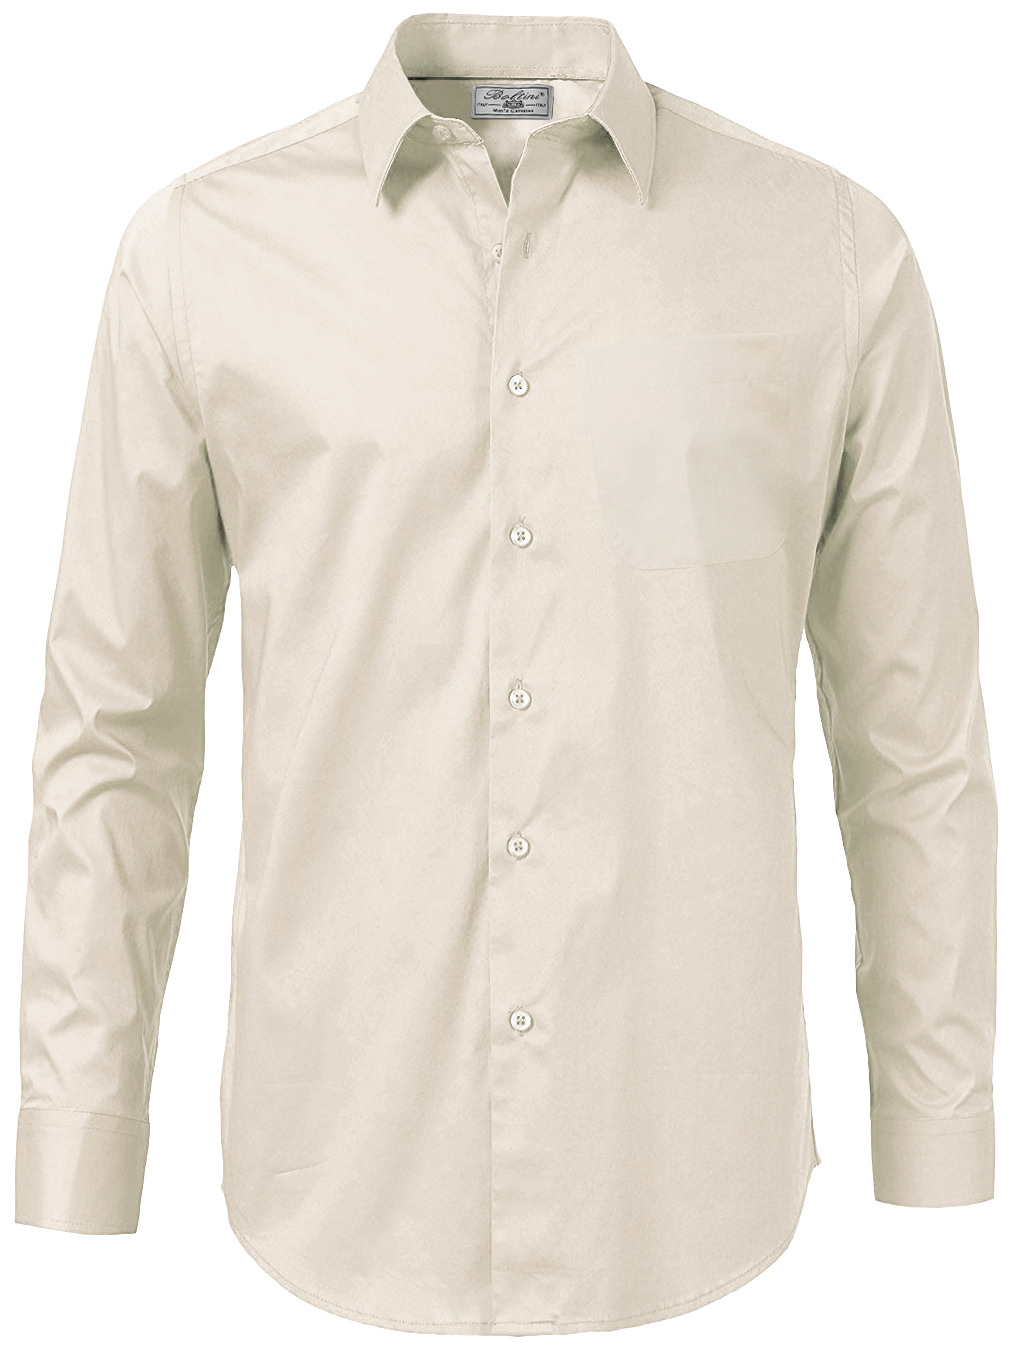 Boltini Italy Men/'s Solid Long Sleeve French Convertible Cuff Dress Shirt